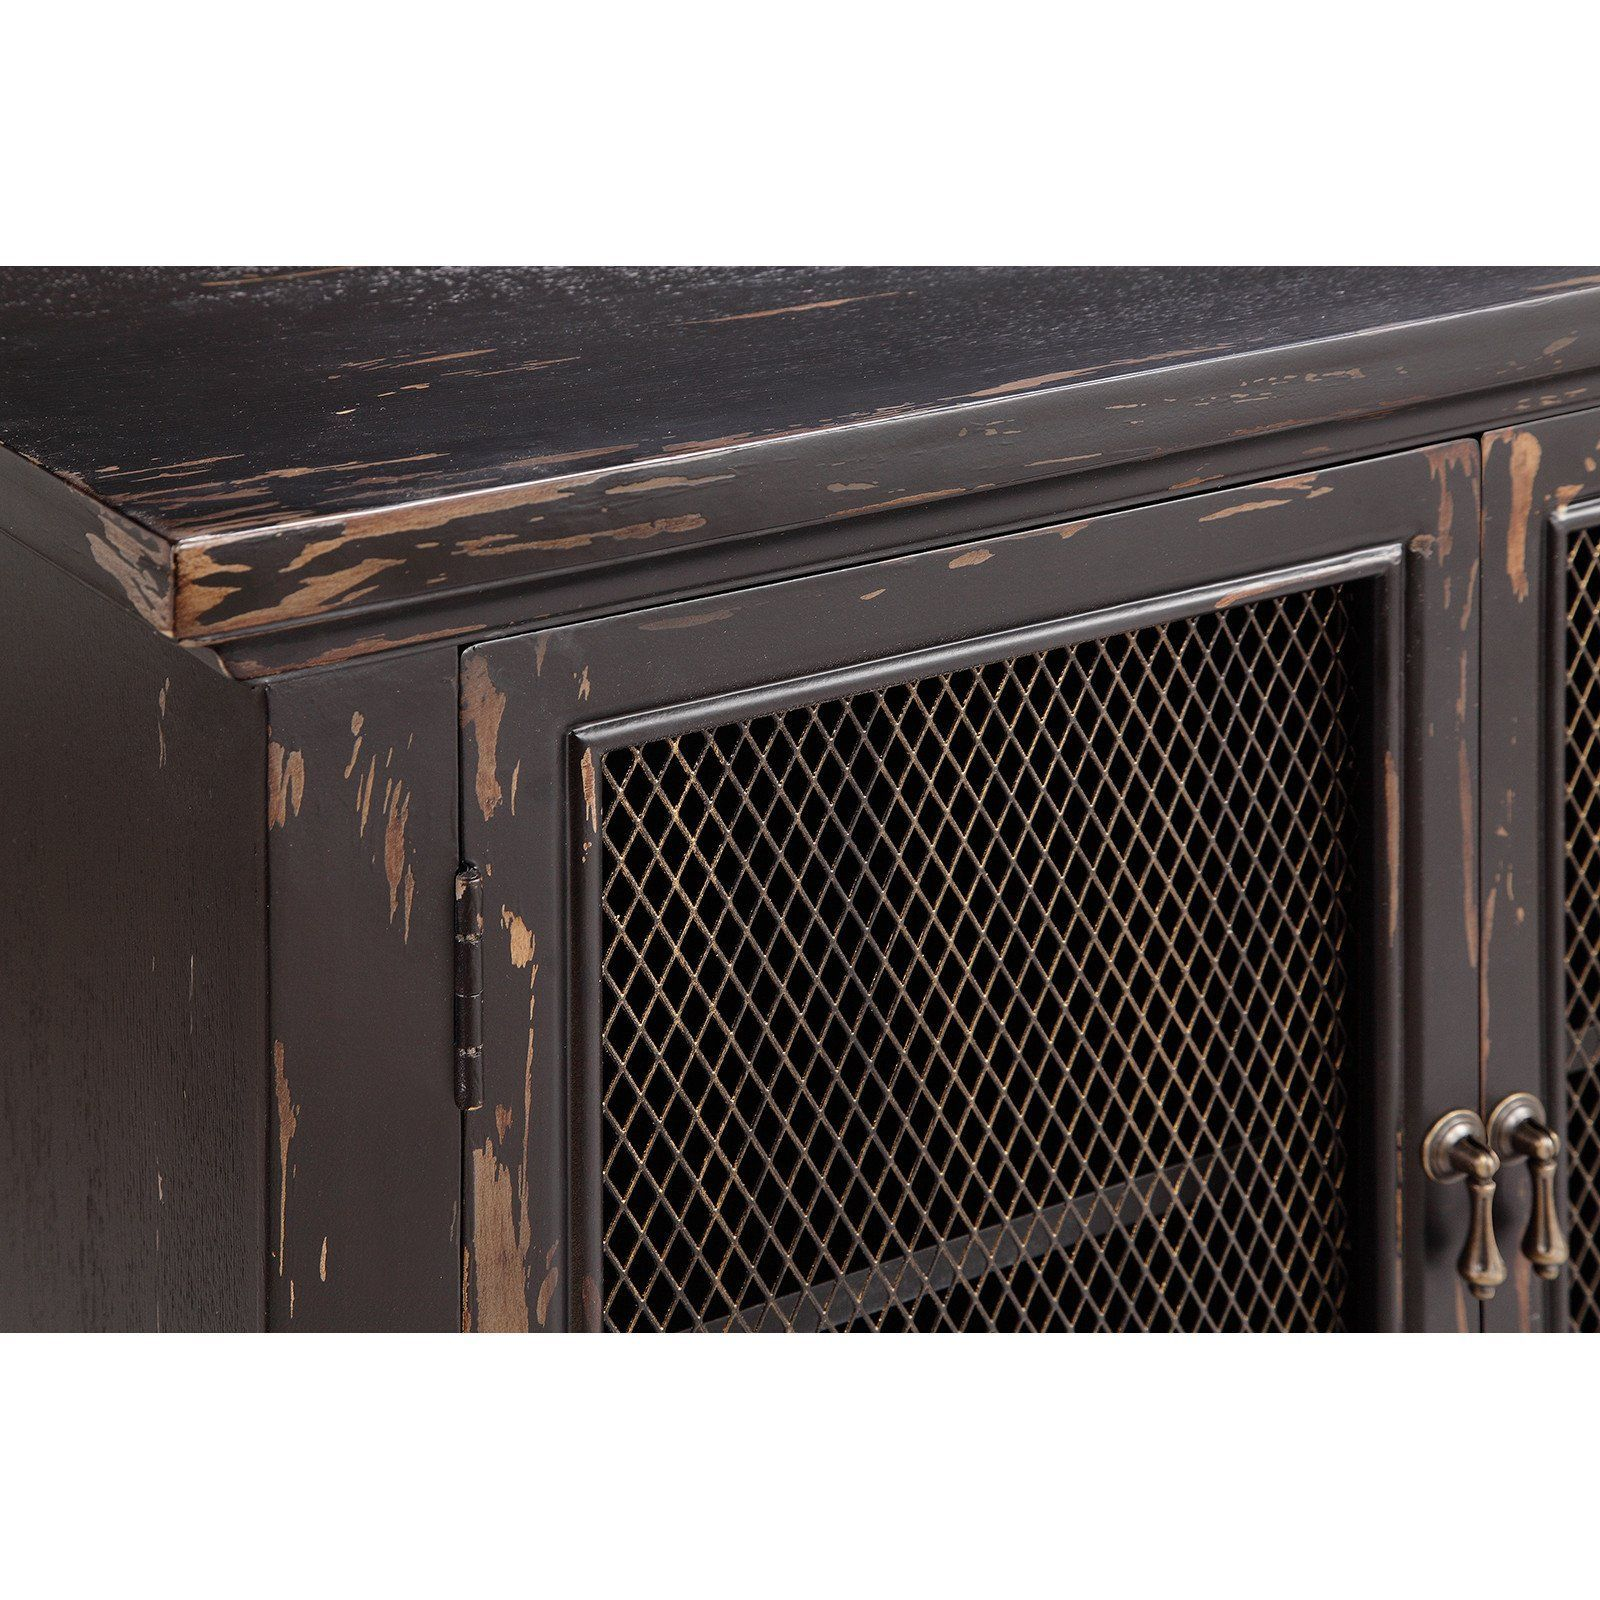 The Hastings Accent Cabinet Adds Style And Functionality To Your Home Decor This Cabinet Has A Hand Painted Distres